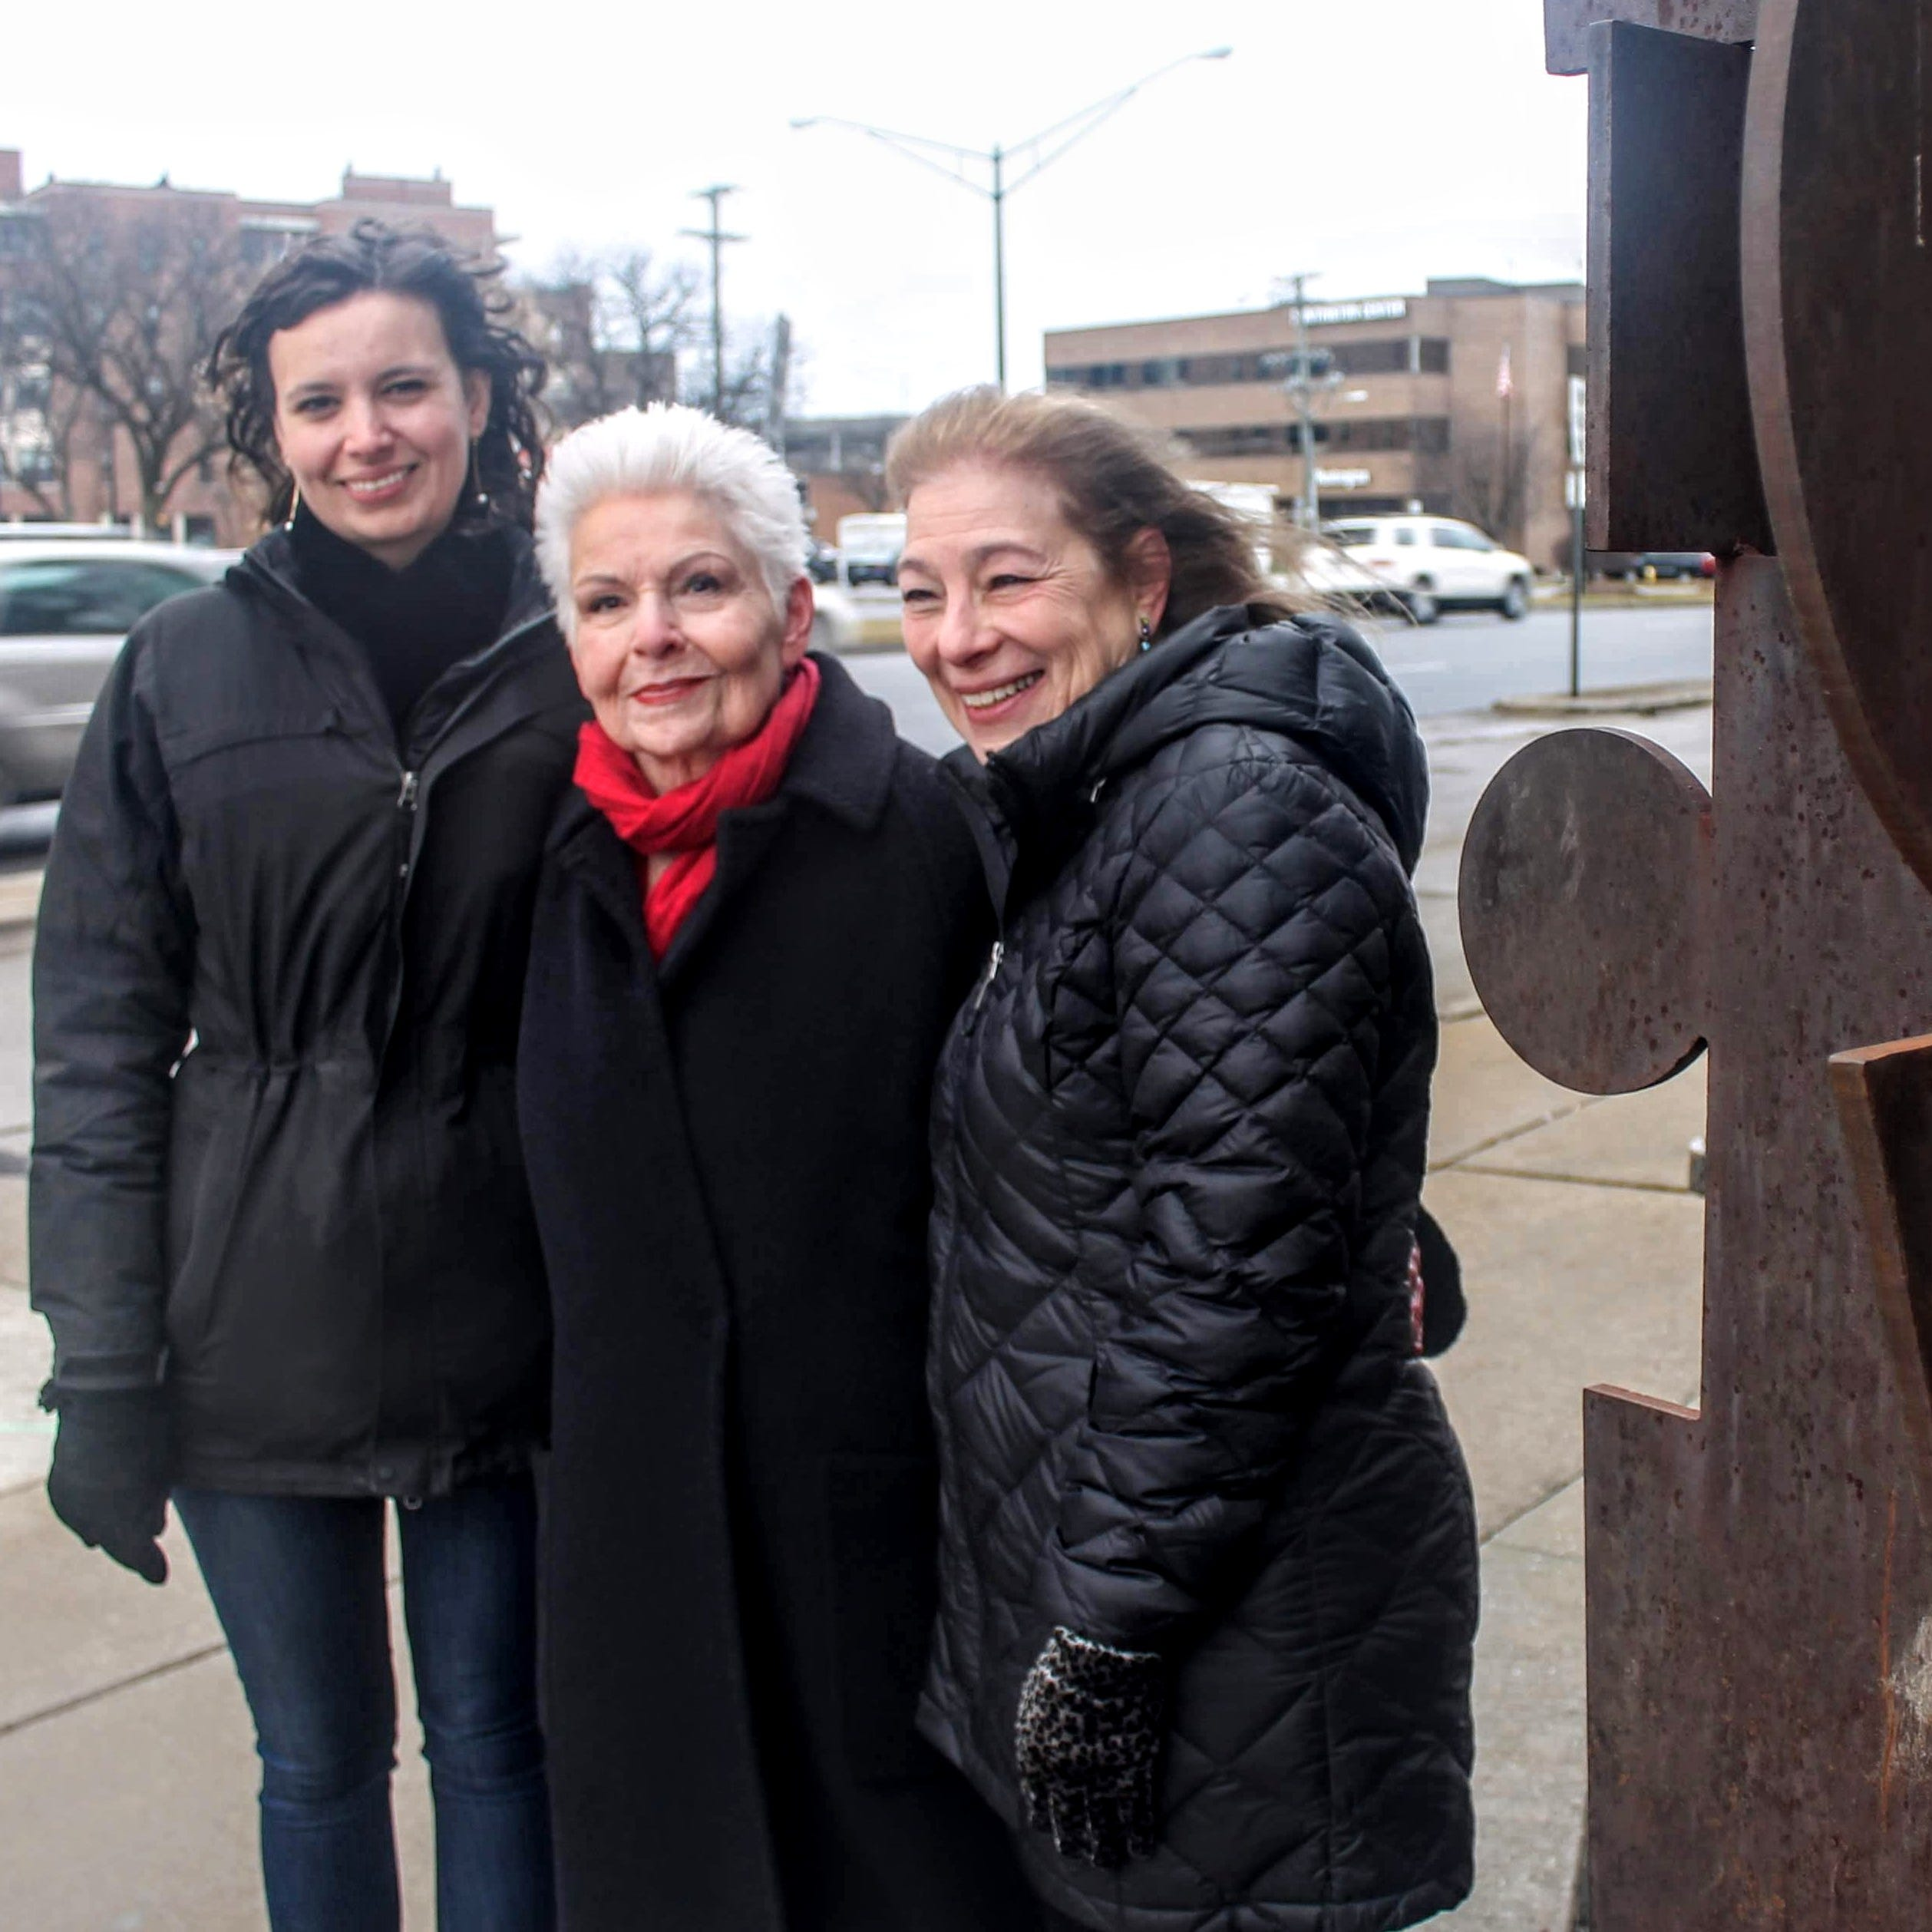 Birmingham resident donates sculpture for display along Woodward Avenue